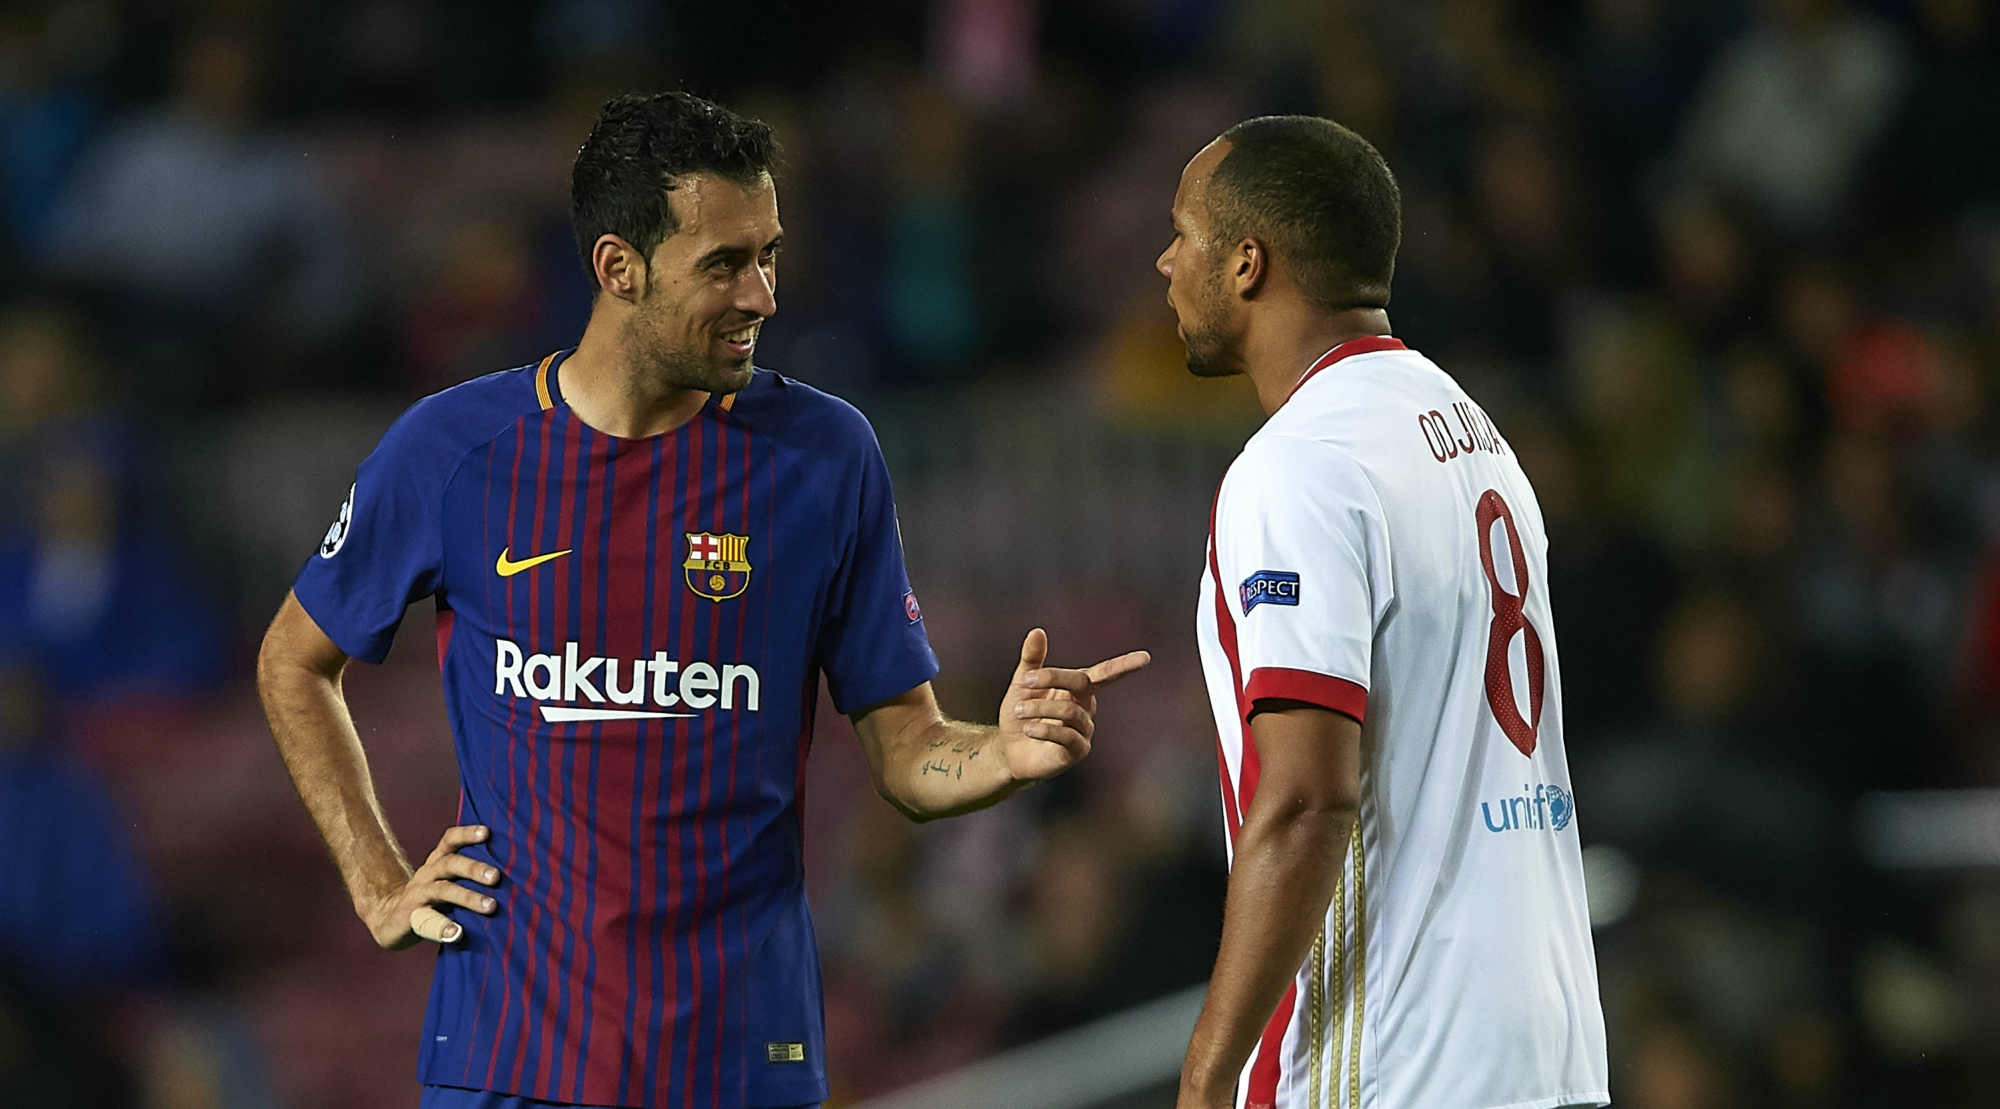 BARCELONA, SPAIN - OCTOBER 18: Sergio Busquets of Barcelona argues with Vadis Odjidja of Olympiakos Piraeus during the UEFA Champions League group D match between FC Barcelona and Olympiakos Piraeus at Camp Nou on October 18, 2017 in Barcelona, Spain. (Photo by Manuel Queimadelos Alonso/Getty Images)